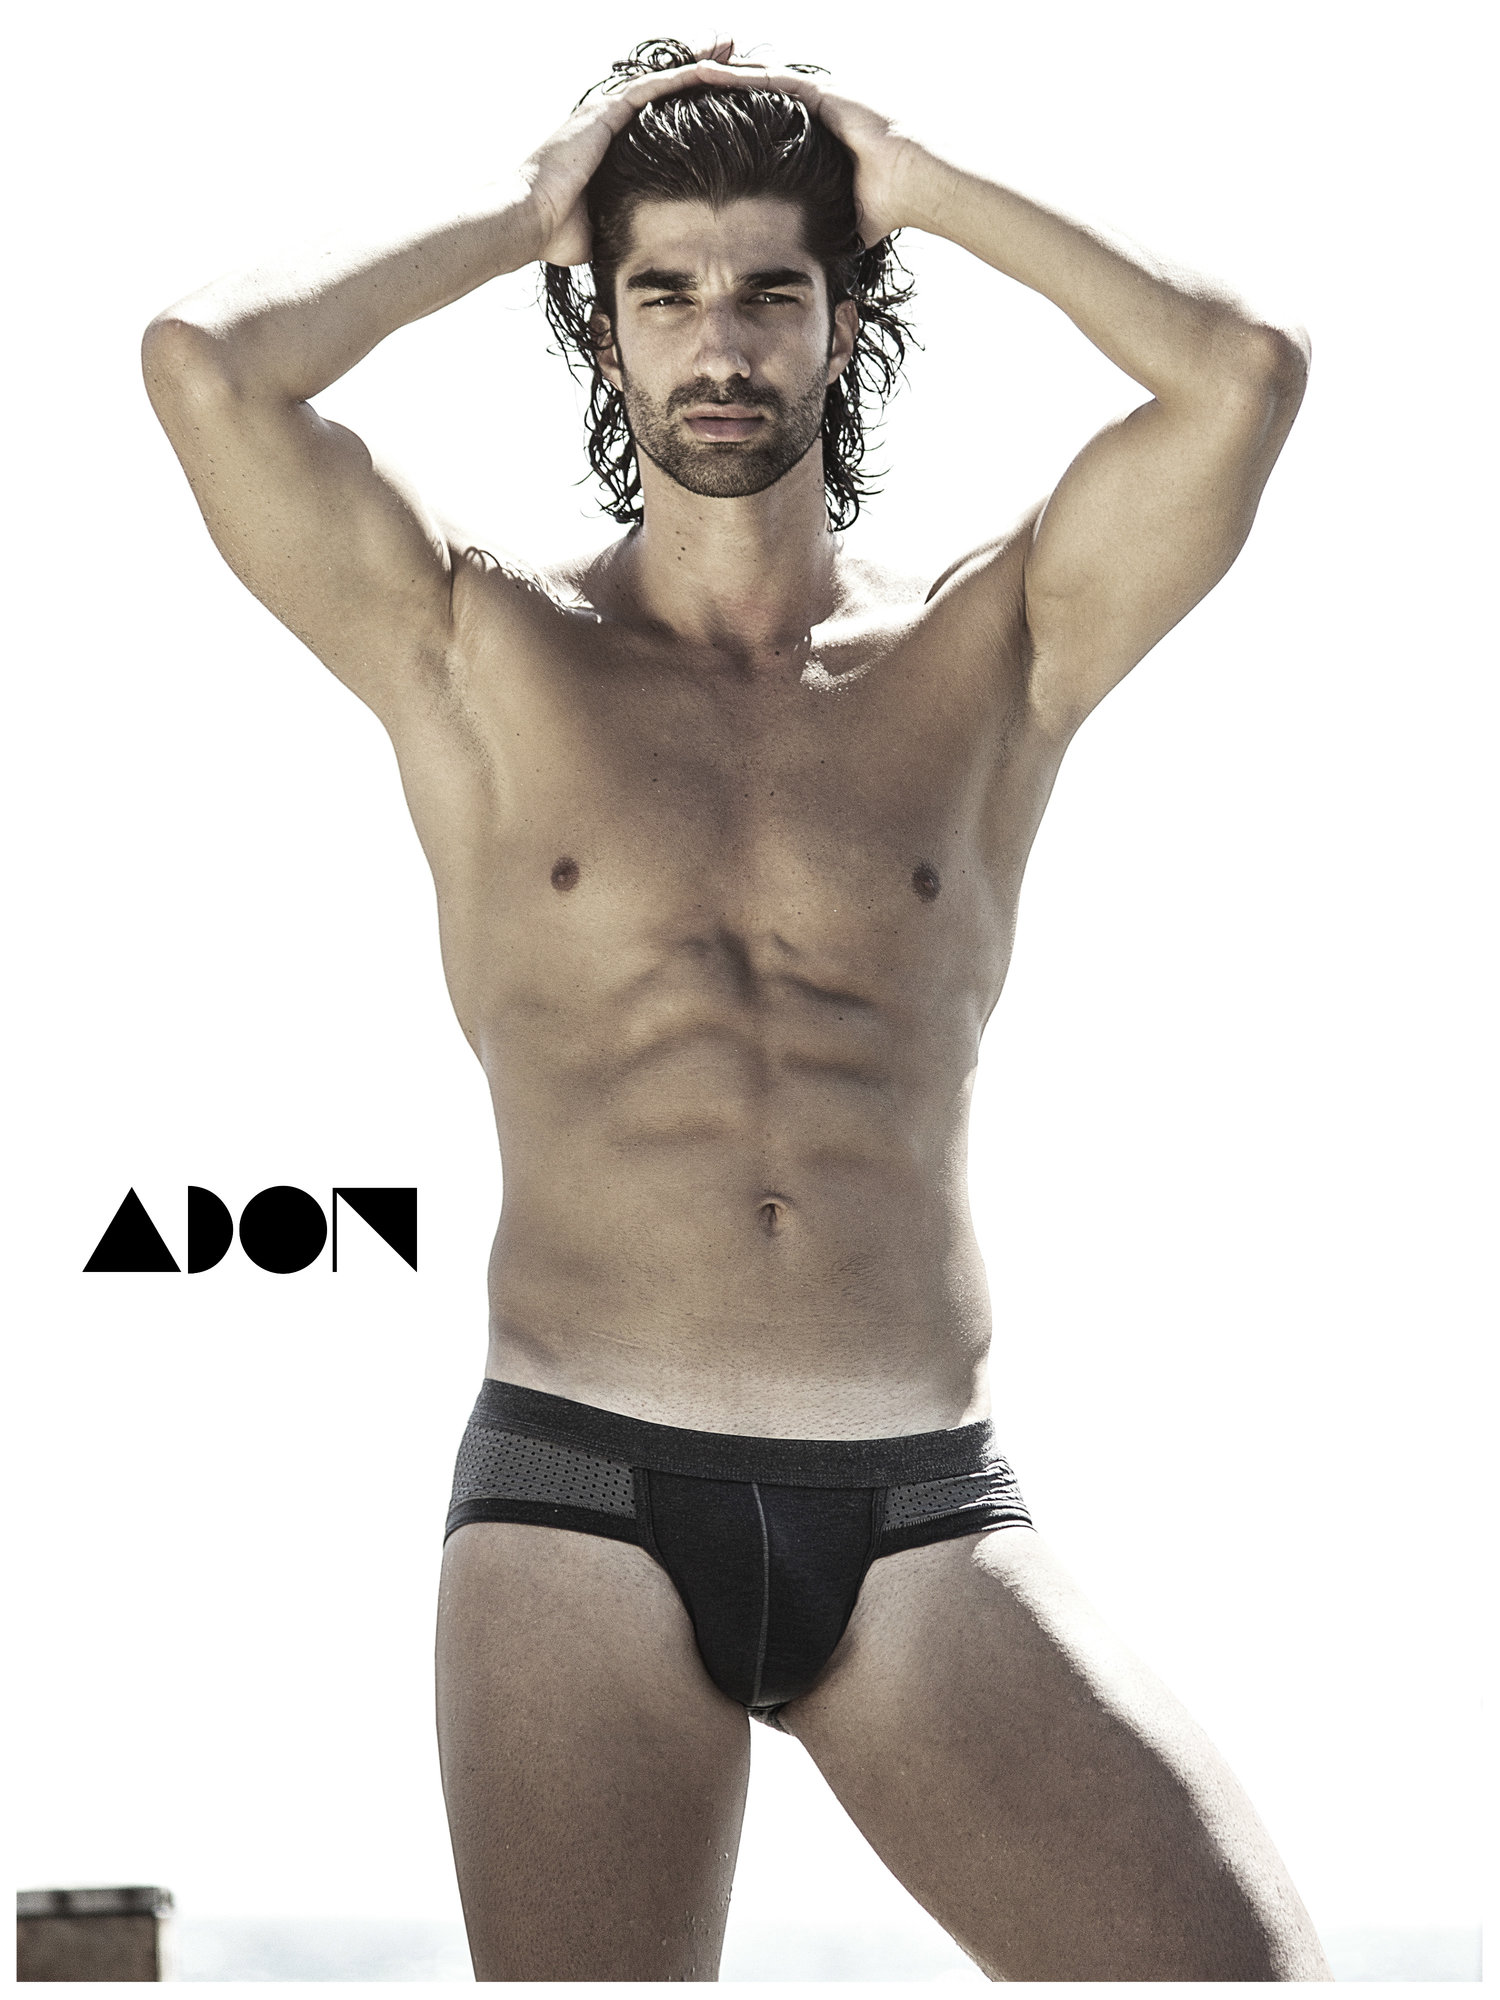 Adon Exclusive: Model Andreas Chrysanthou By Jay Logothetis